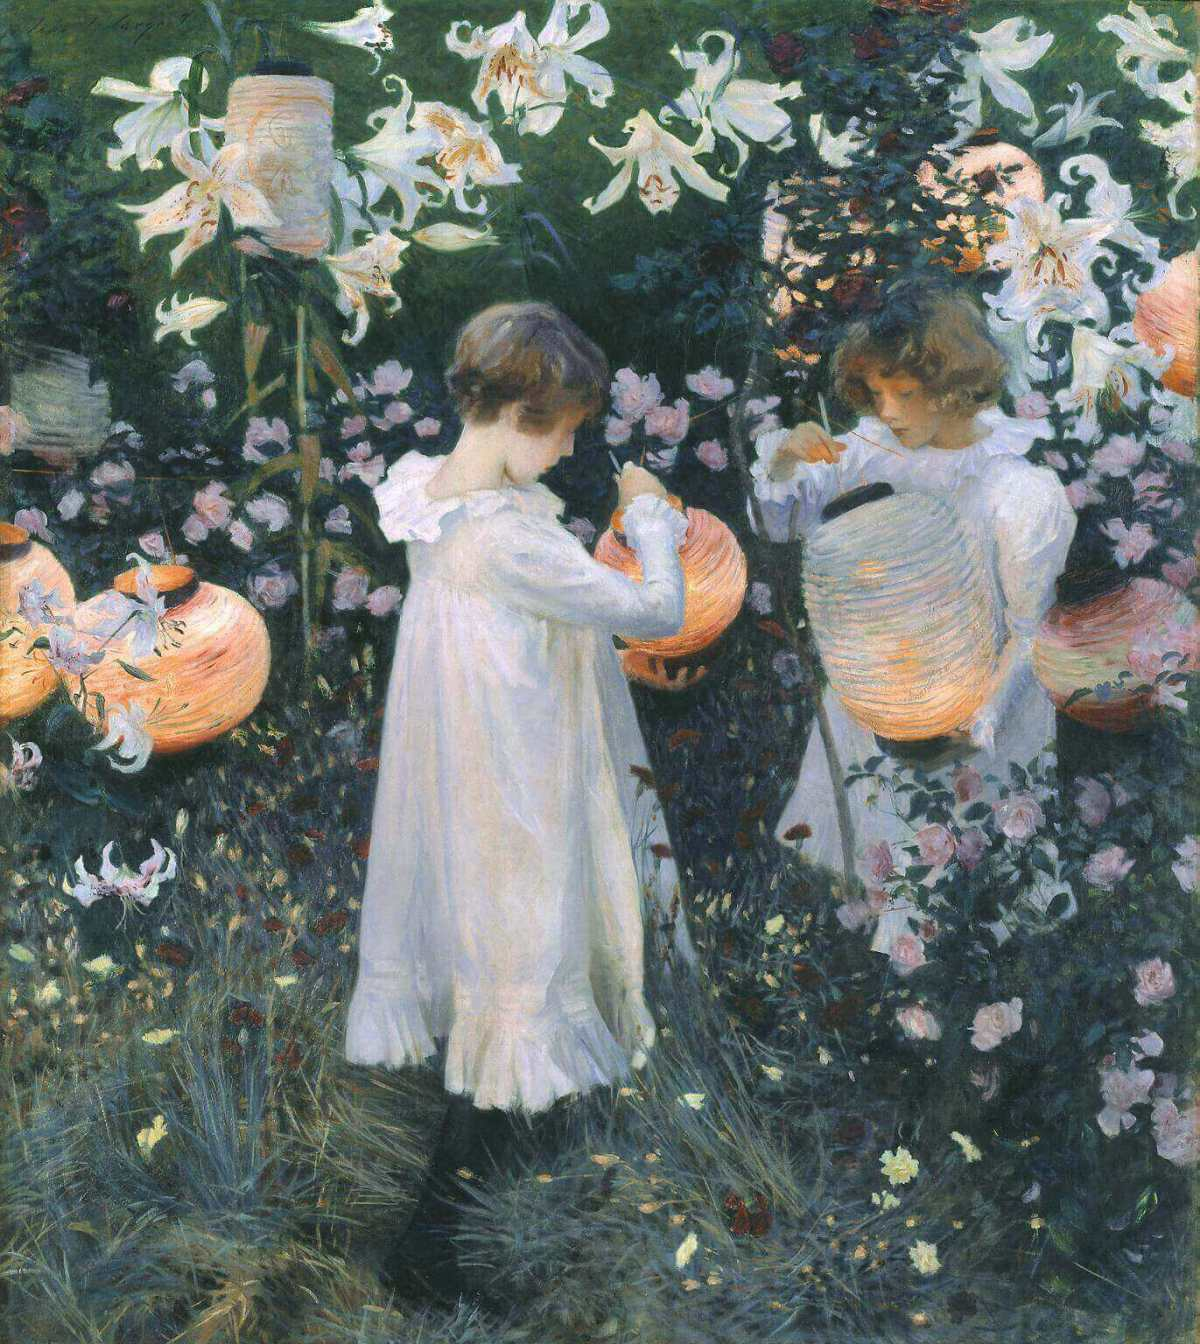 John Sargent. Carnation, Lily, Lily, Rose. 1885-1886